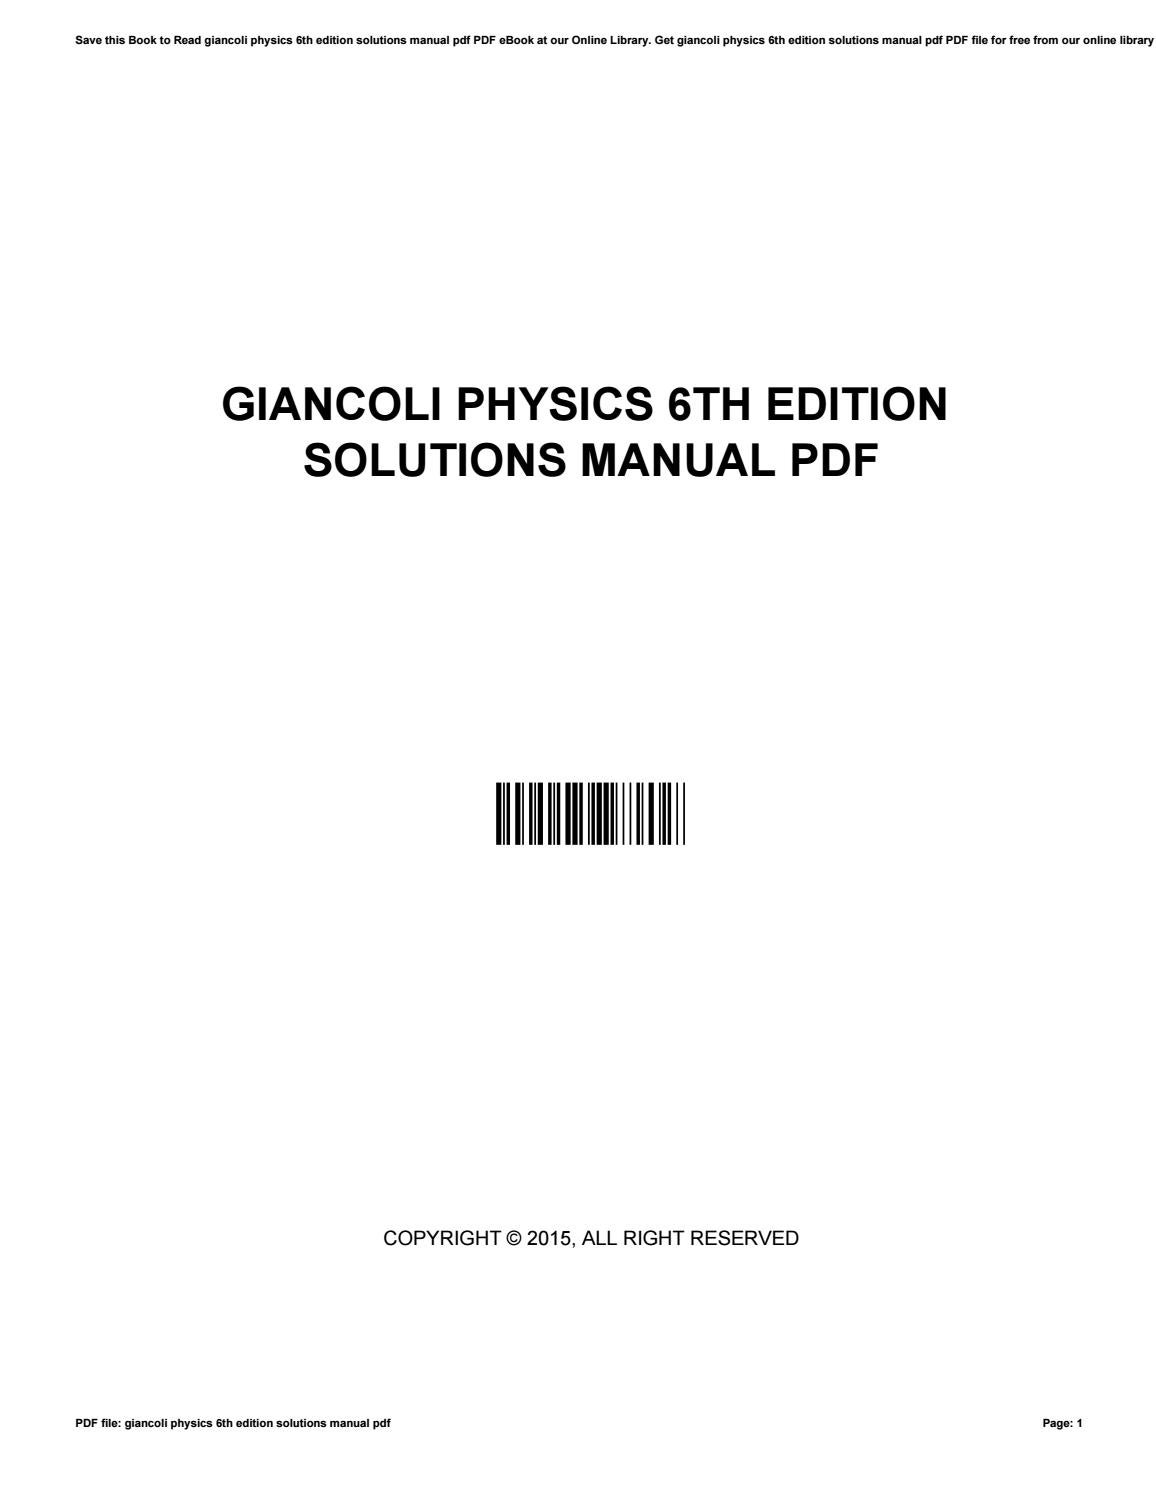 Giancoli physics 6th edition solutions manual pdf by NicoleLewis1556 - issuu